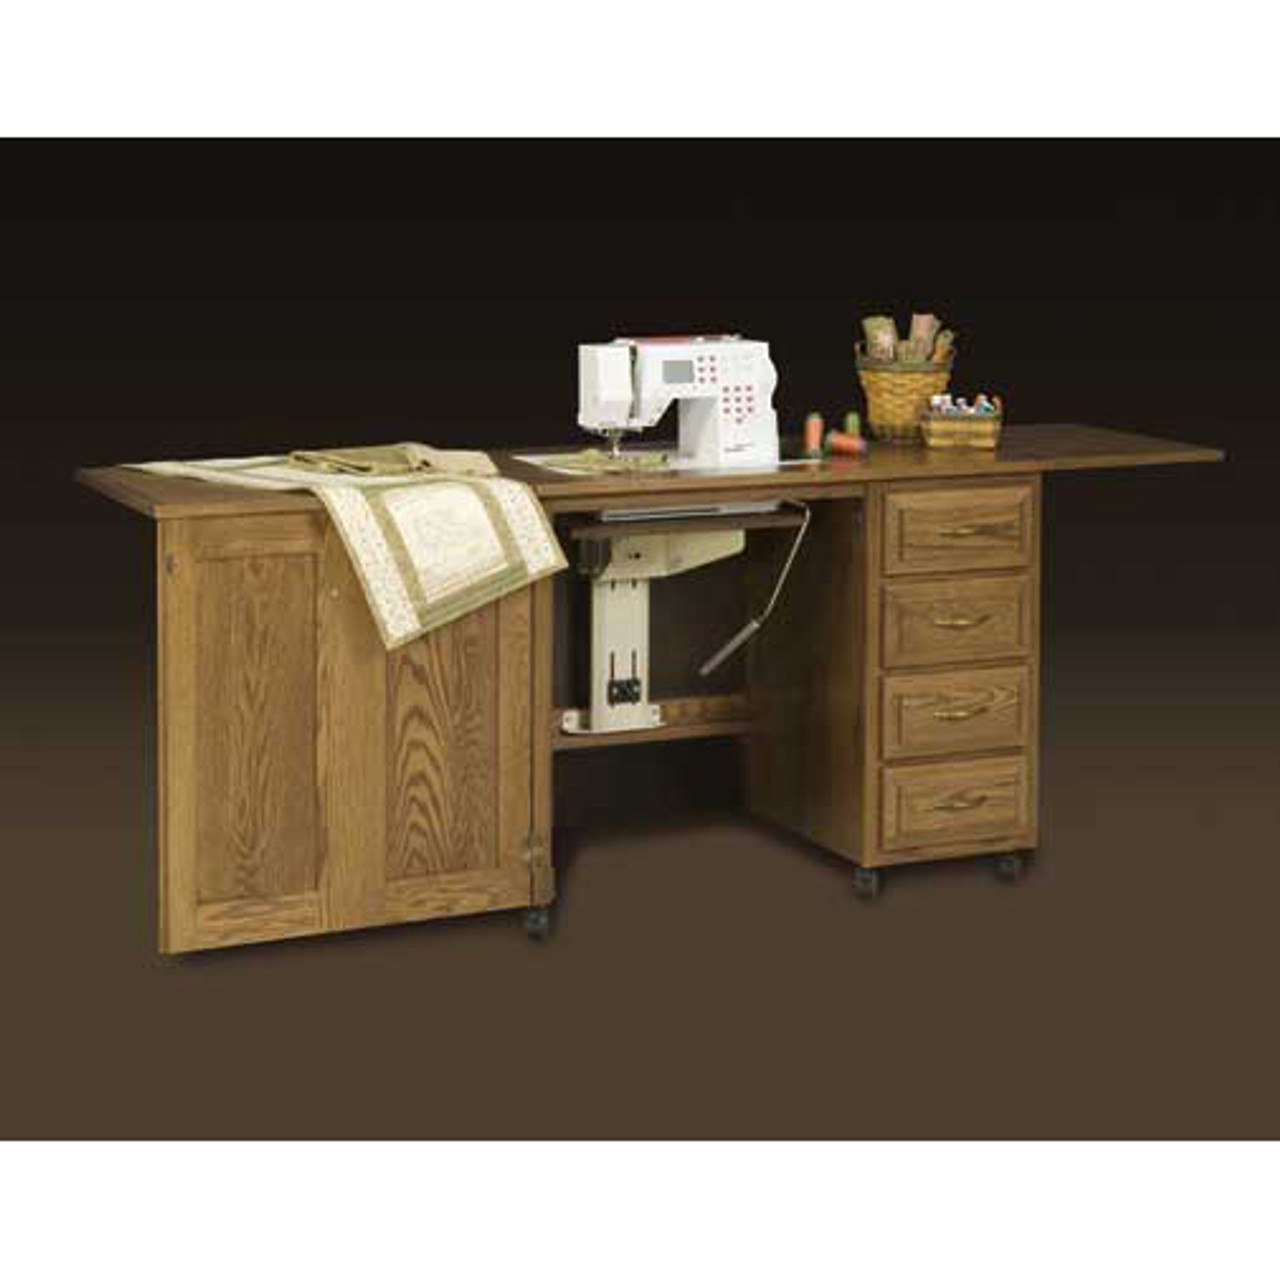 ... Schrocks Of Walnut Creek Sewing Machine Cabinet In Real Oak Wood And  Your Choice Of Stain ...